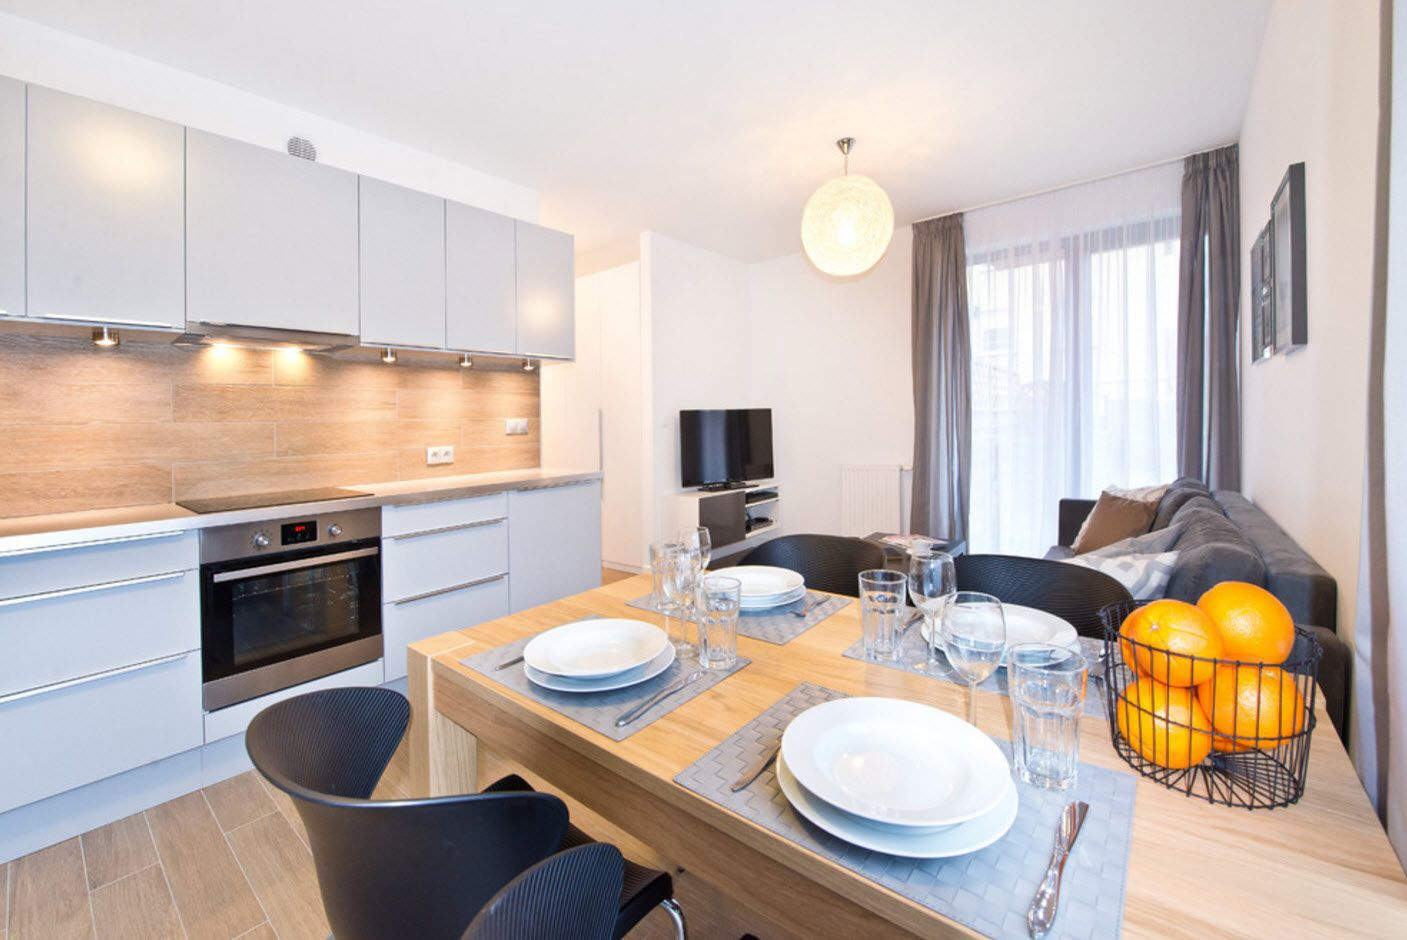 Kitchen, living, dining and relazing zones all combined